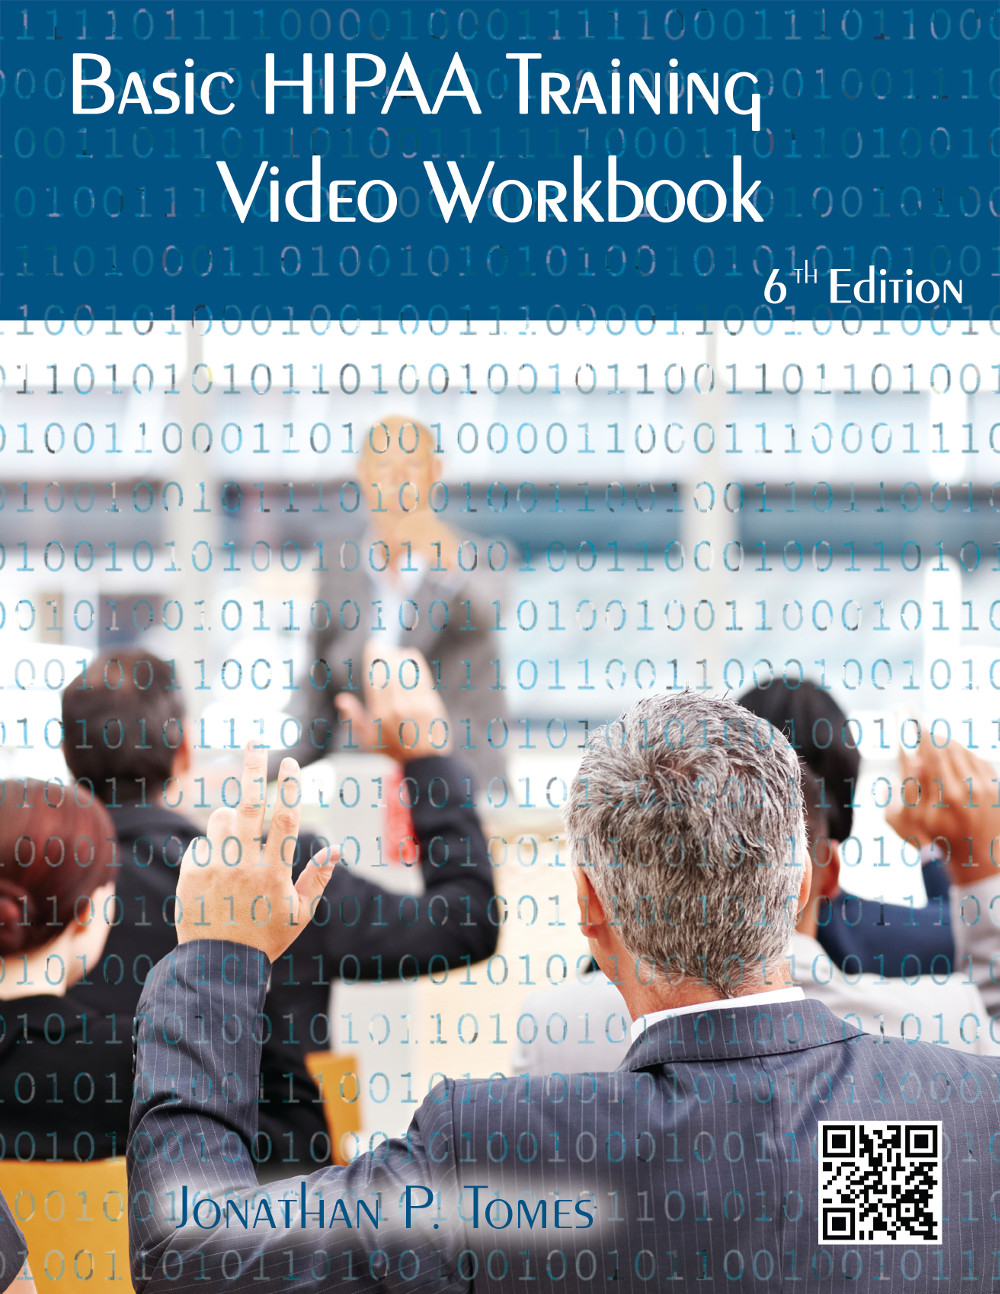 Basic HIPAA Training Video DVD and Workbook, 6th ed.